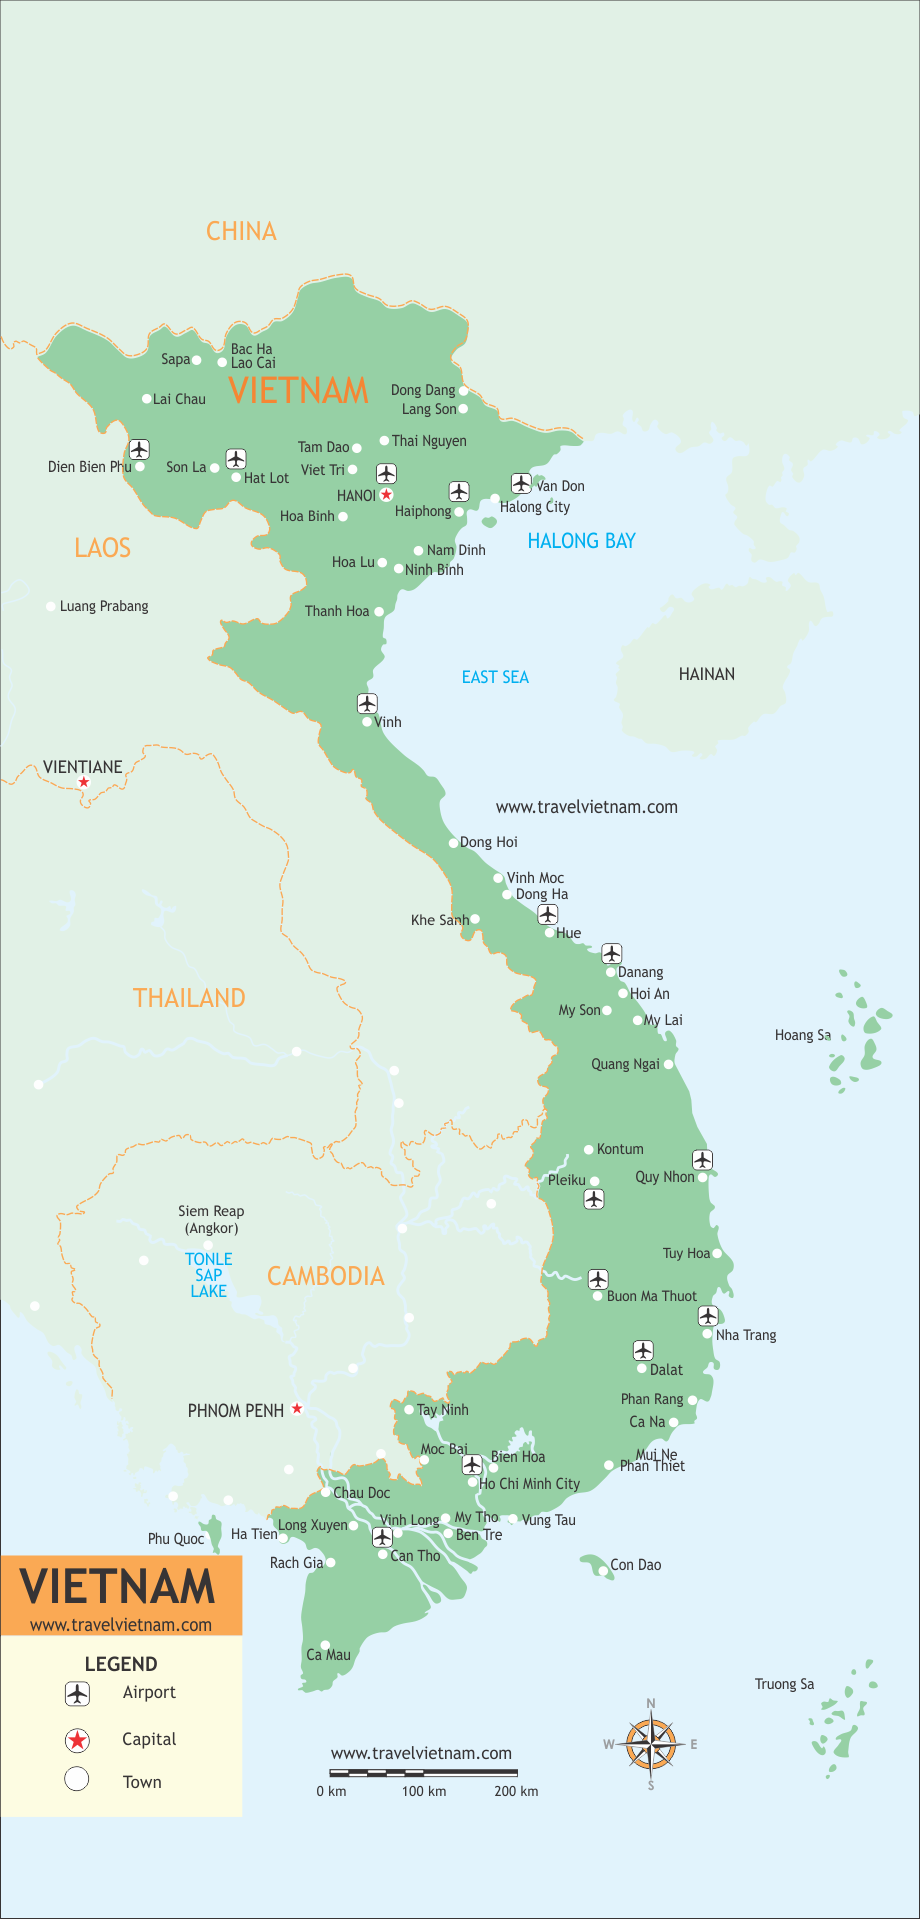 Vietnam Travel Maps by TravelVietnam.Com